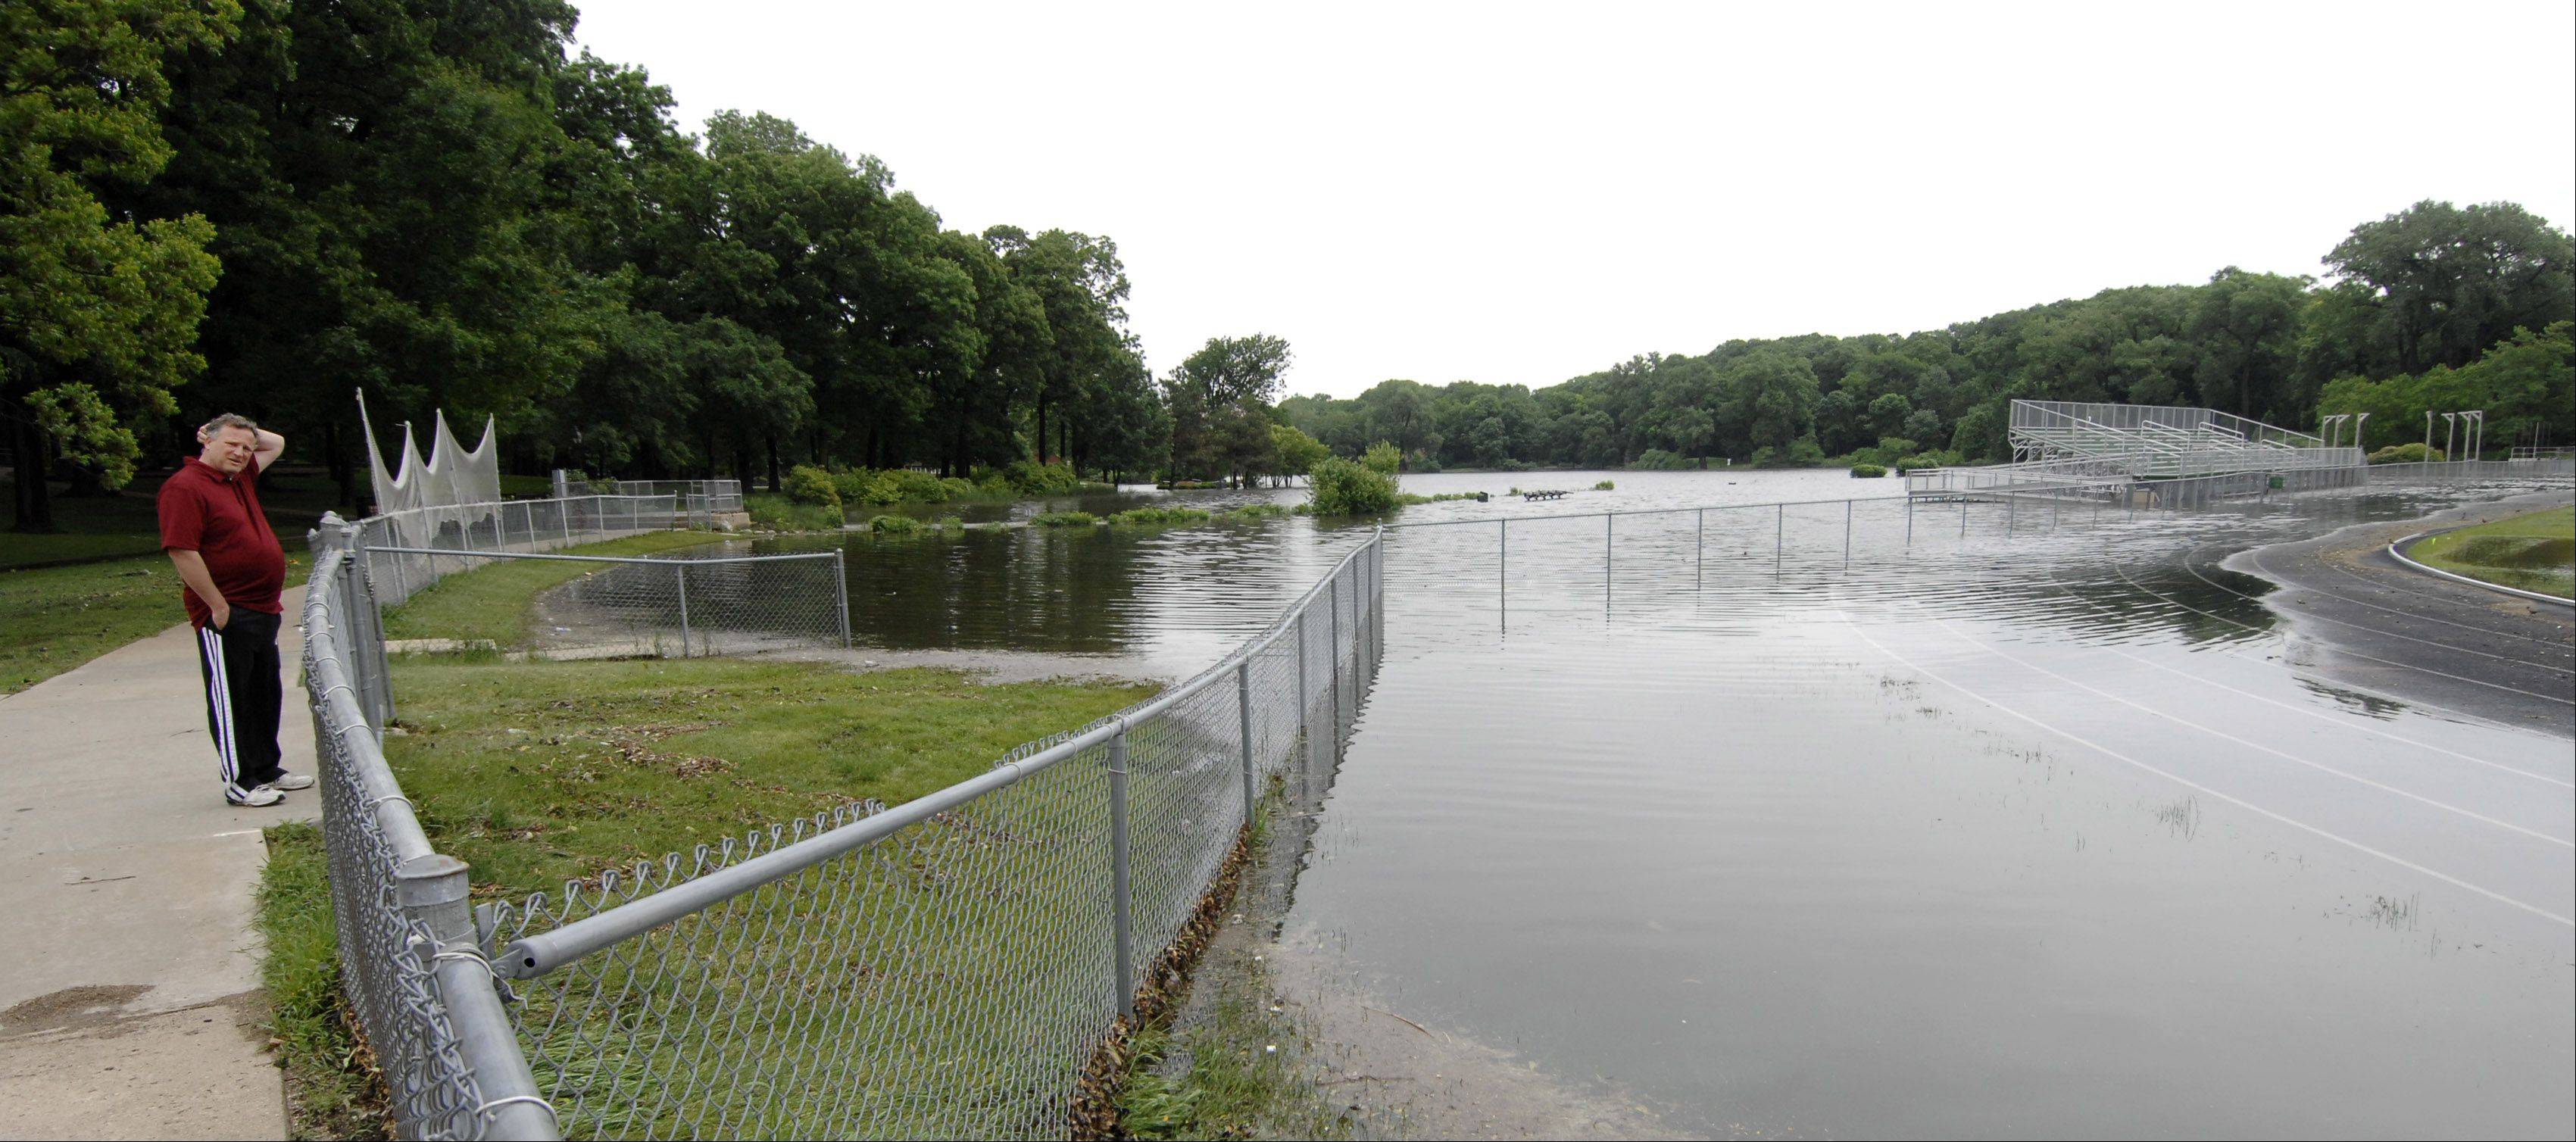 Glen Ellyn making changes to reduce flooding